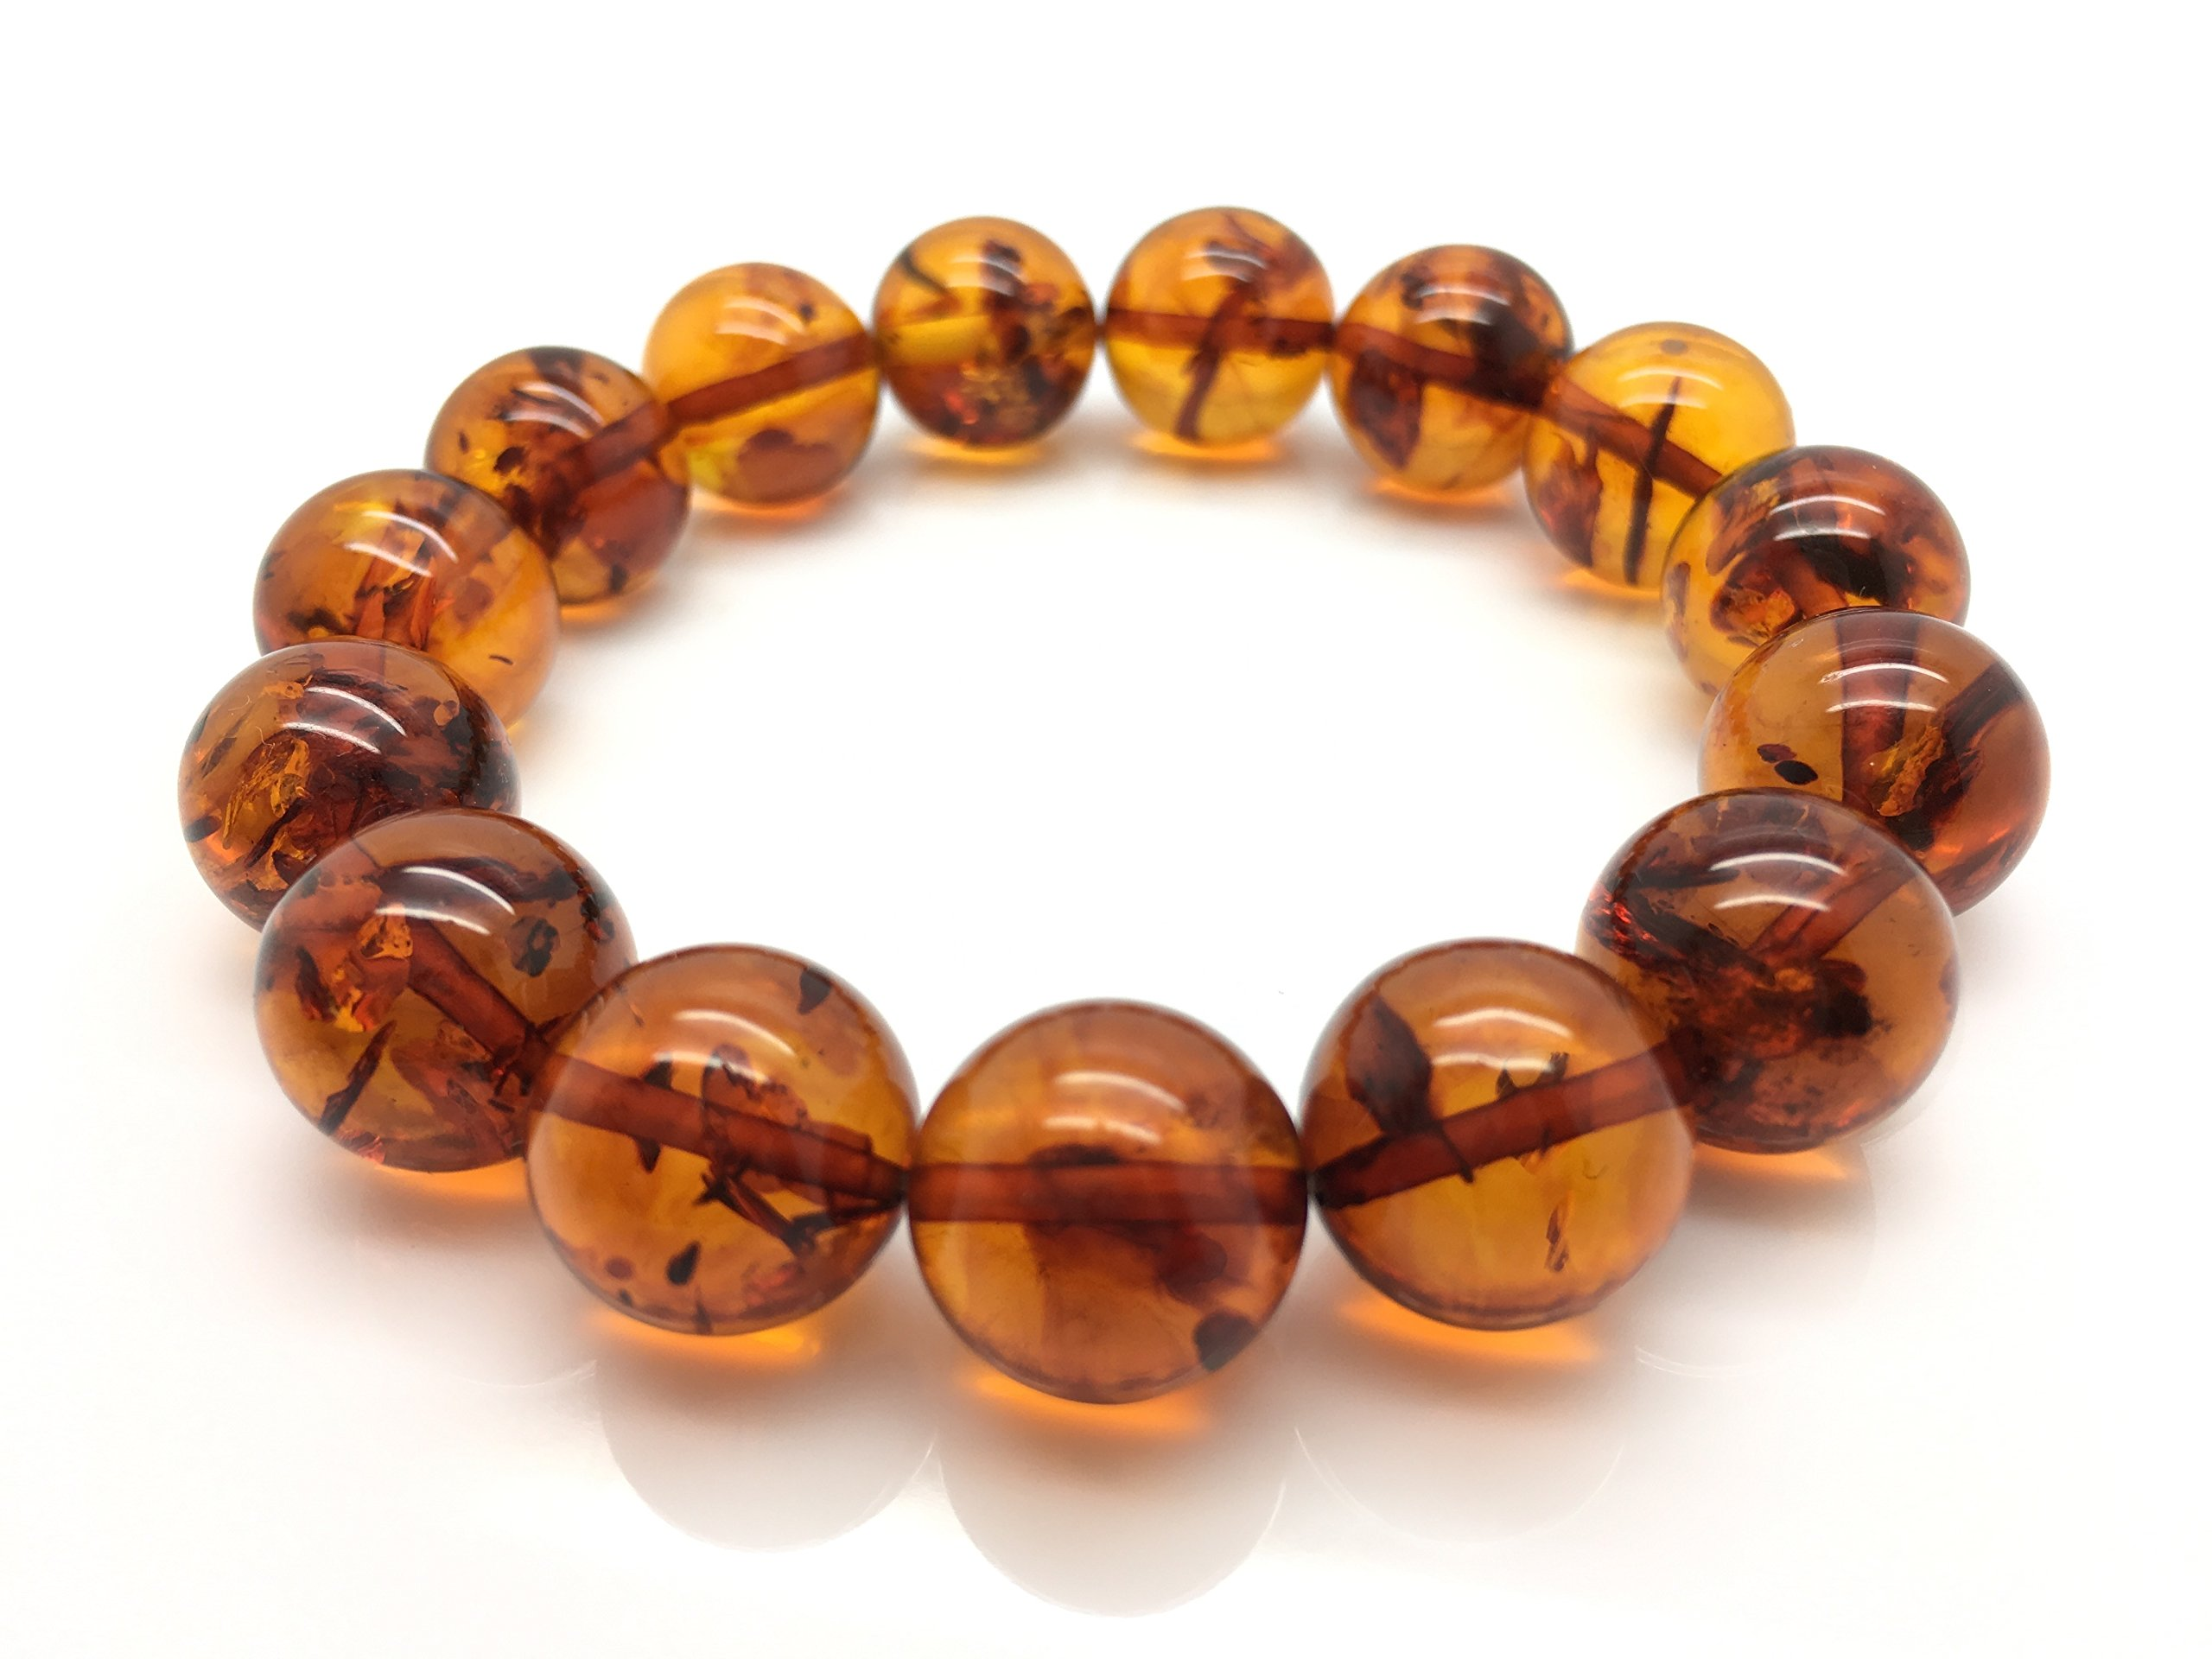 Natural Baltic Amber Bracelet Light Cognac Colour 20,6g 13± mm size. by Mister Amber